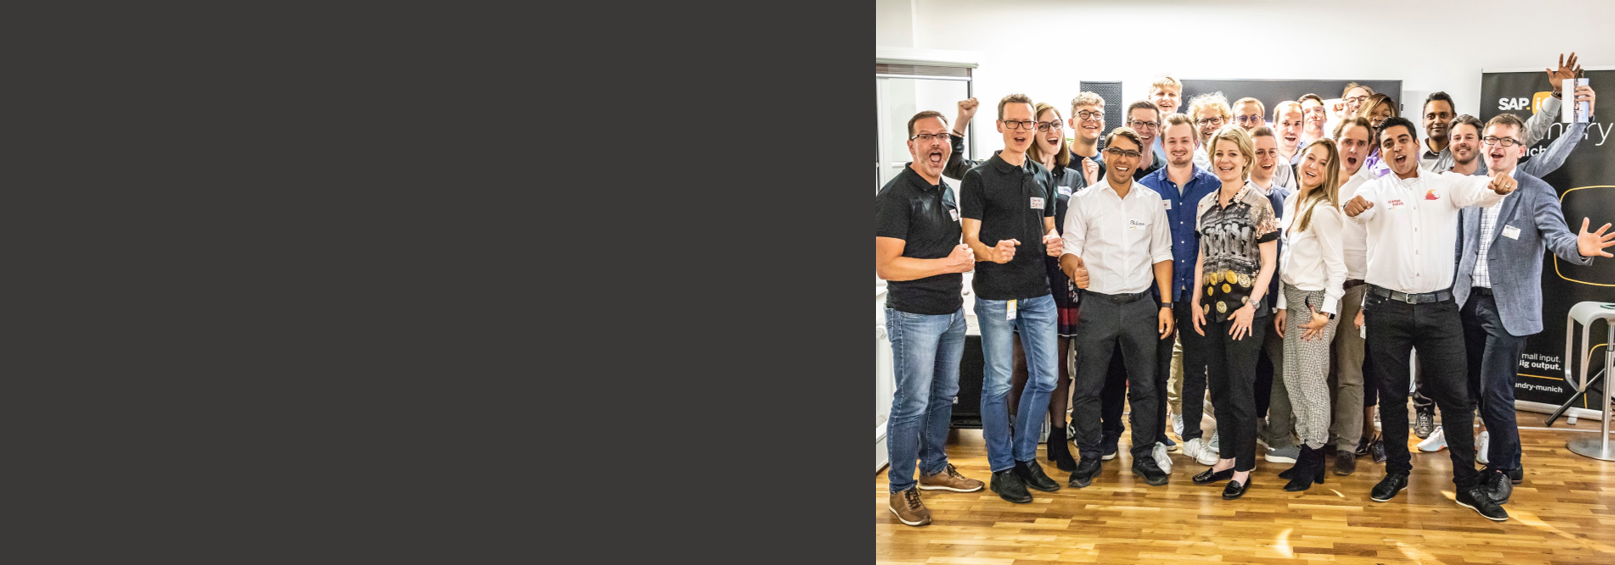 Forging the Future of Customer Experience: Introducing the first SAP.iO Foundry Munich Cohort